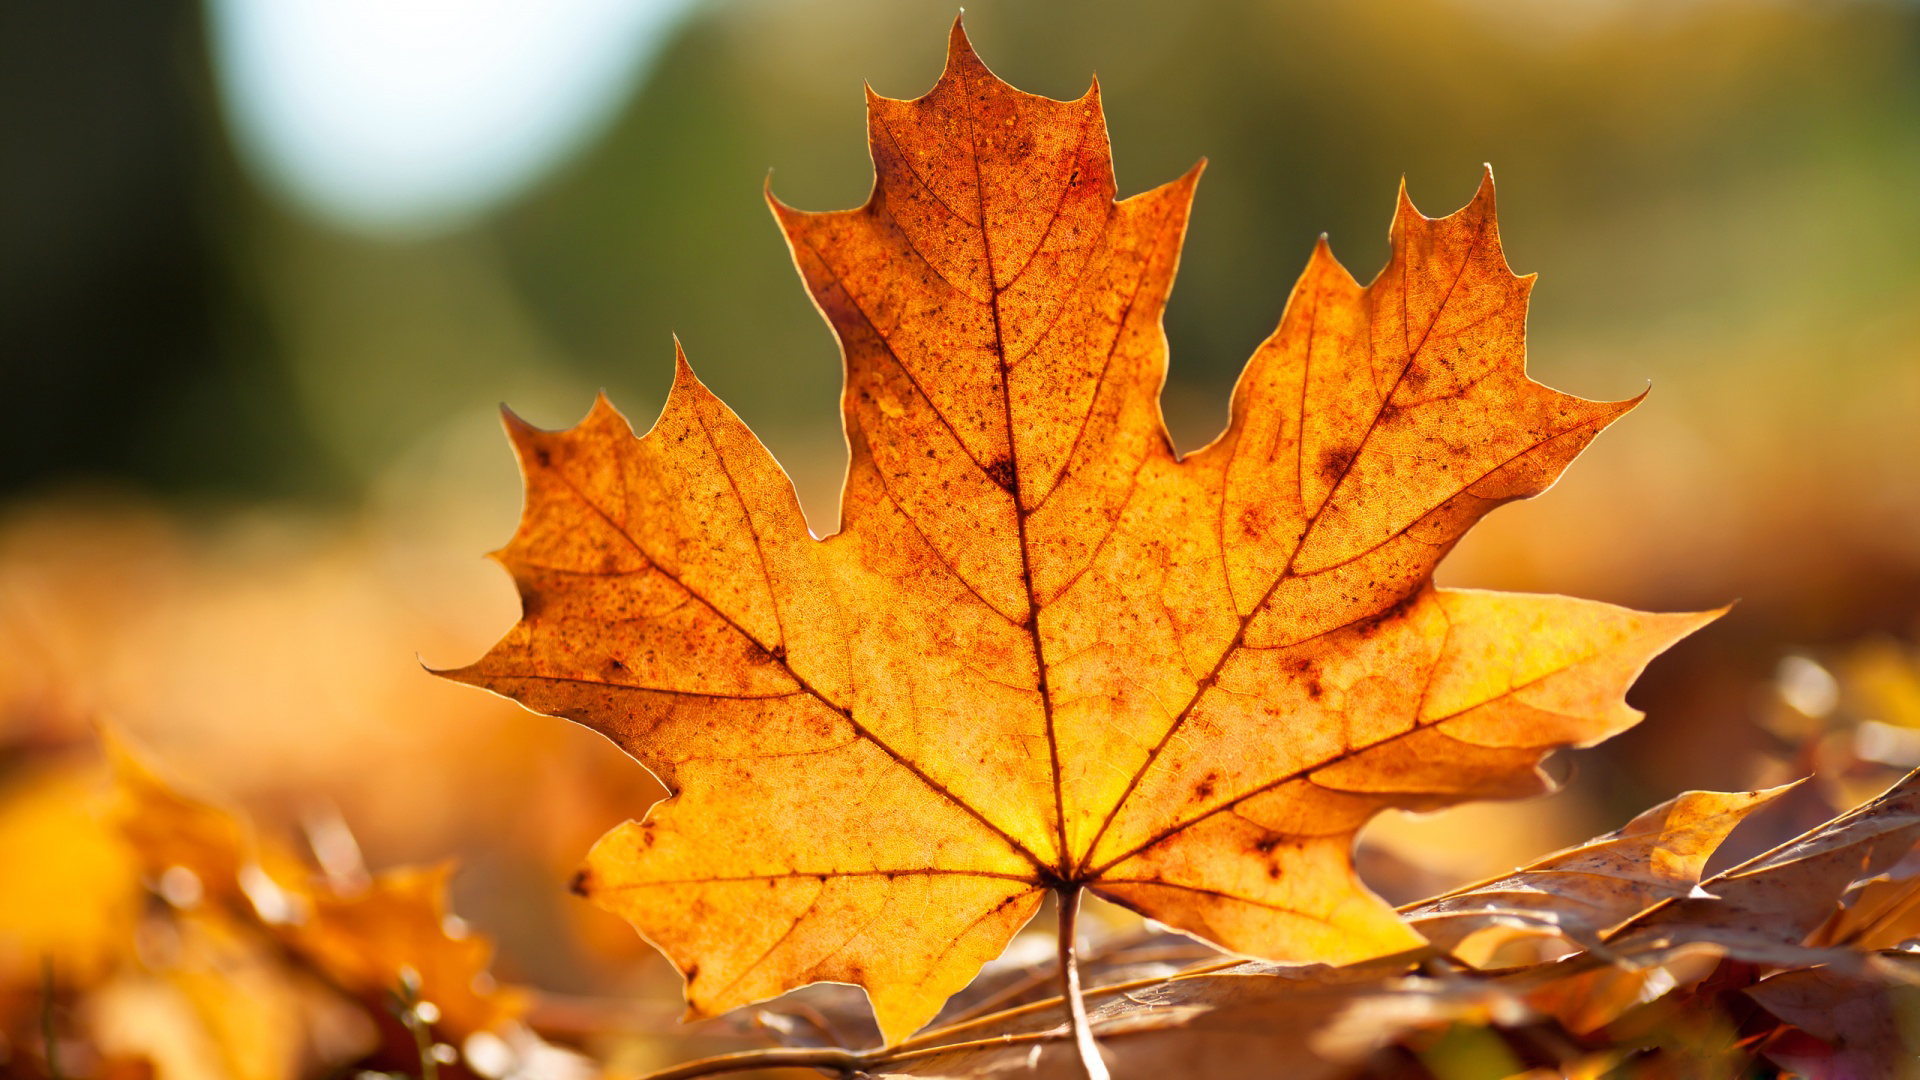 Free Hd Fall Wallpapers Make Your Screen Shine Brighter